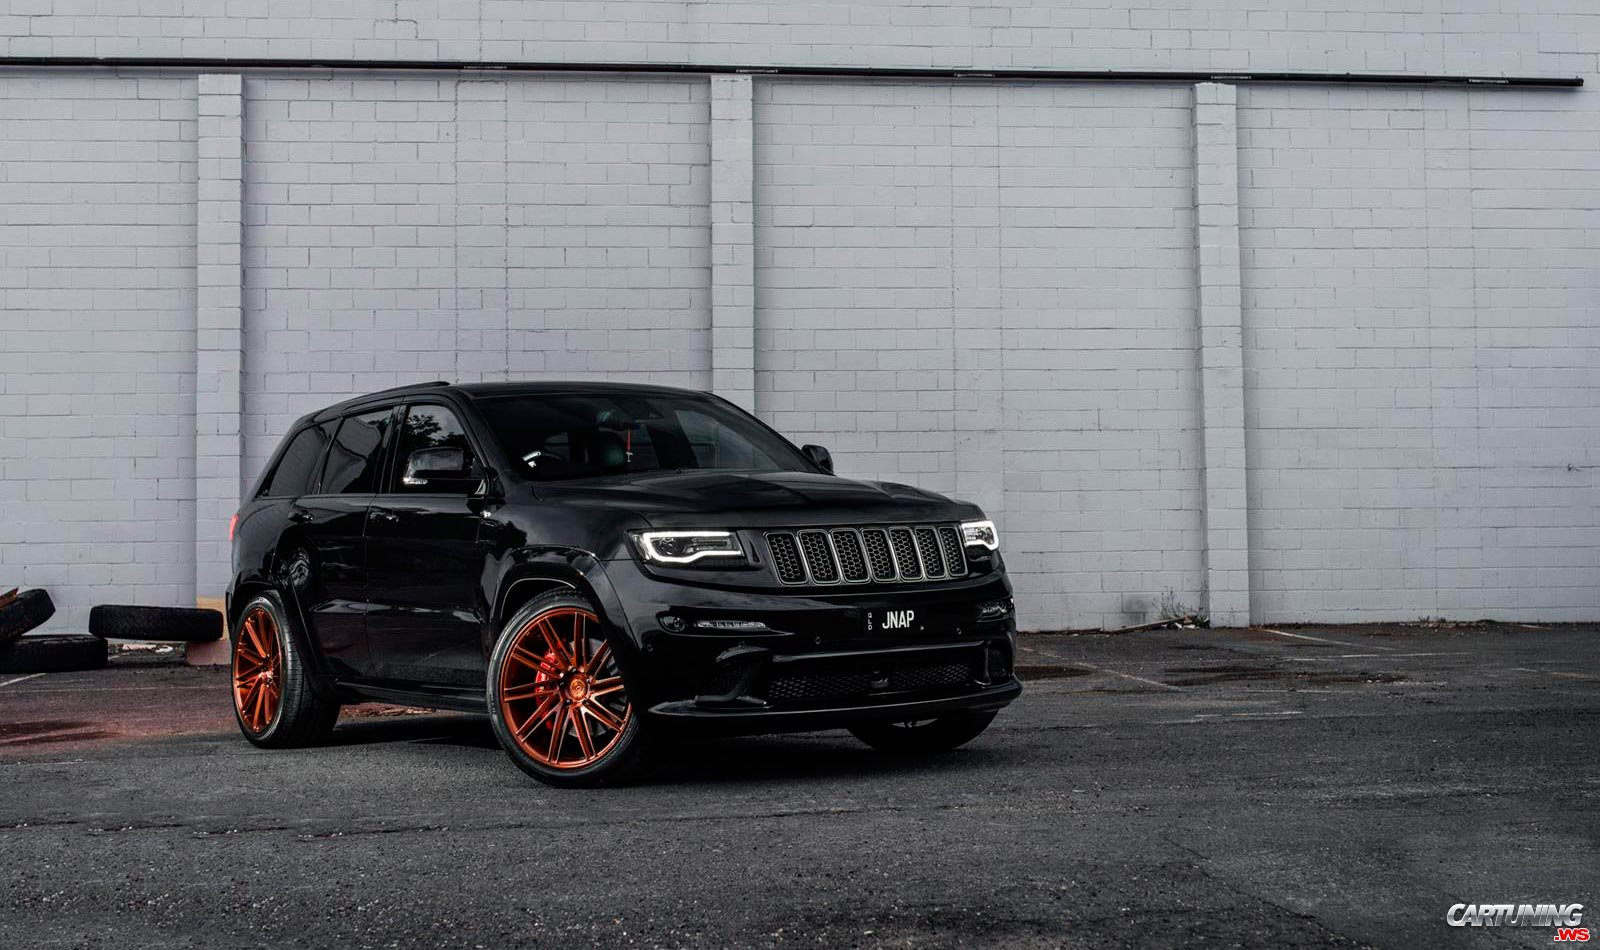 jeep grand cherokee srt8 vossen. Black Bedroom Furniture Sets. Home Design Ideas